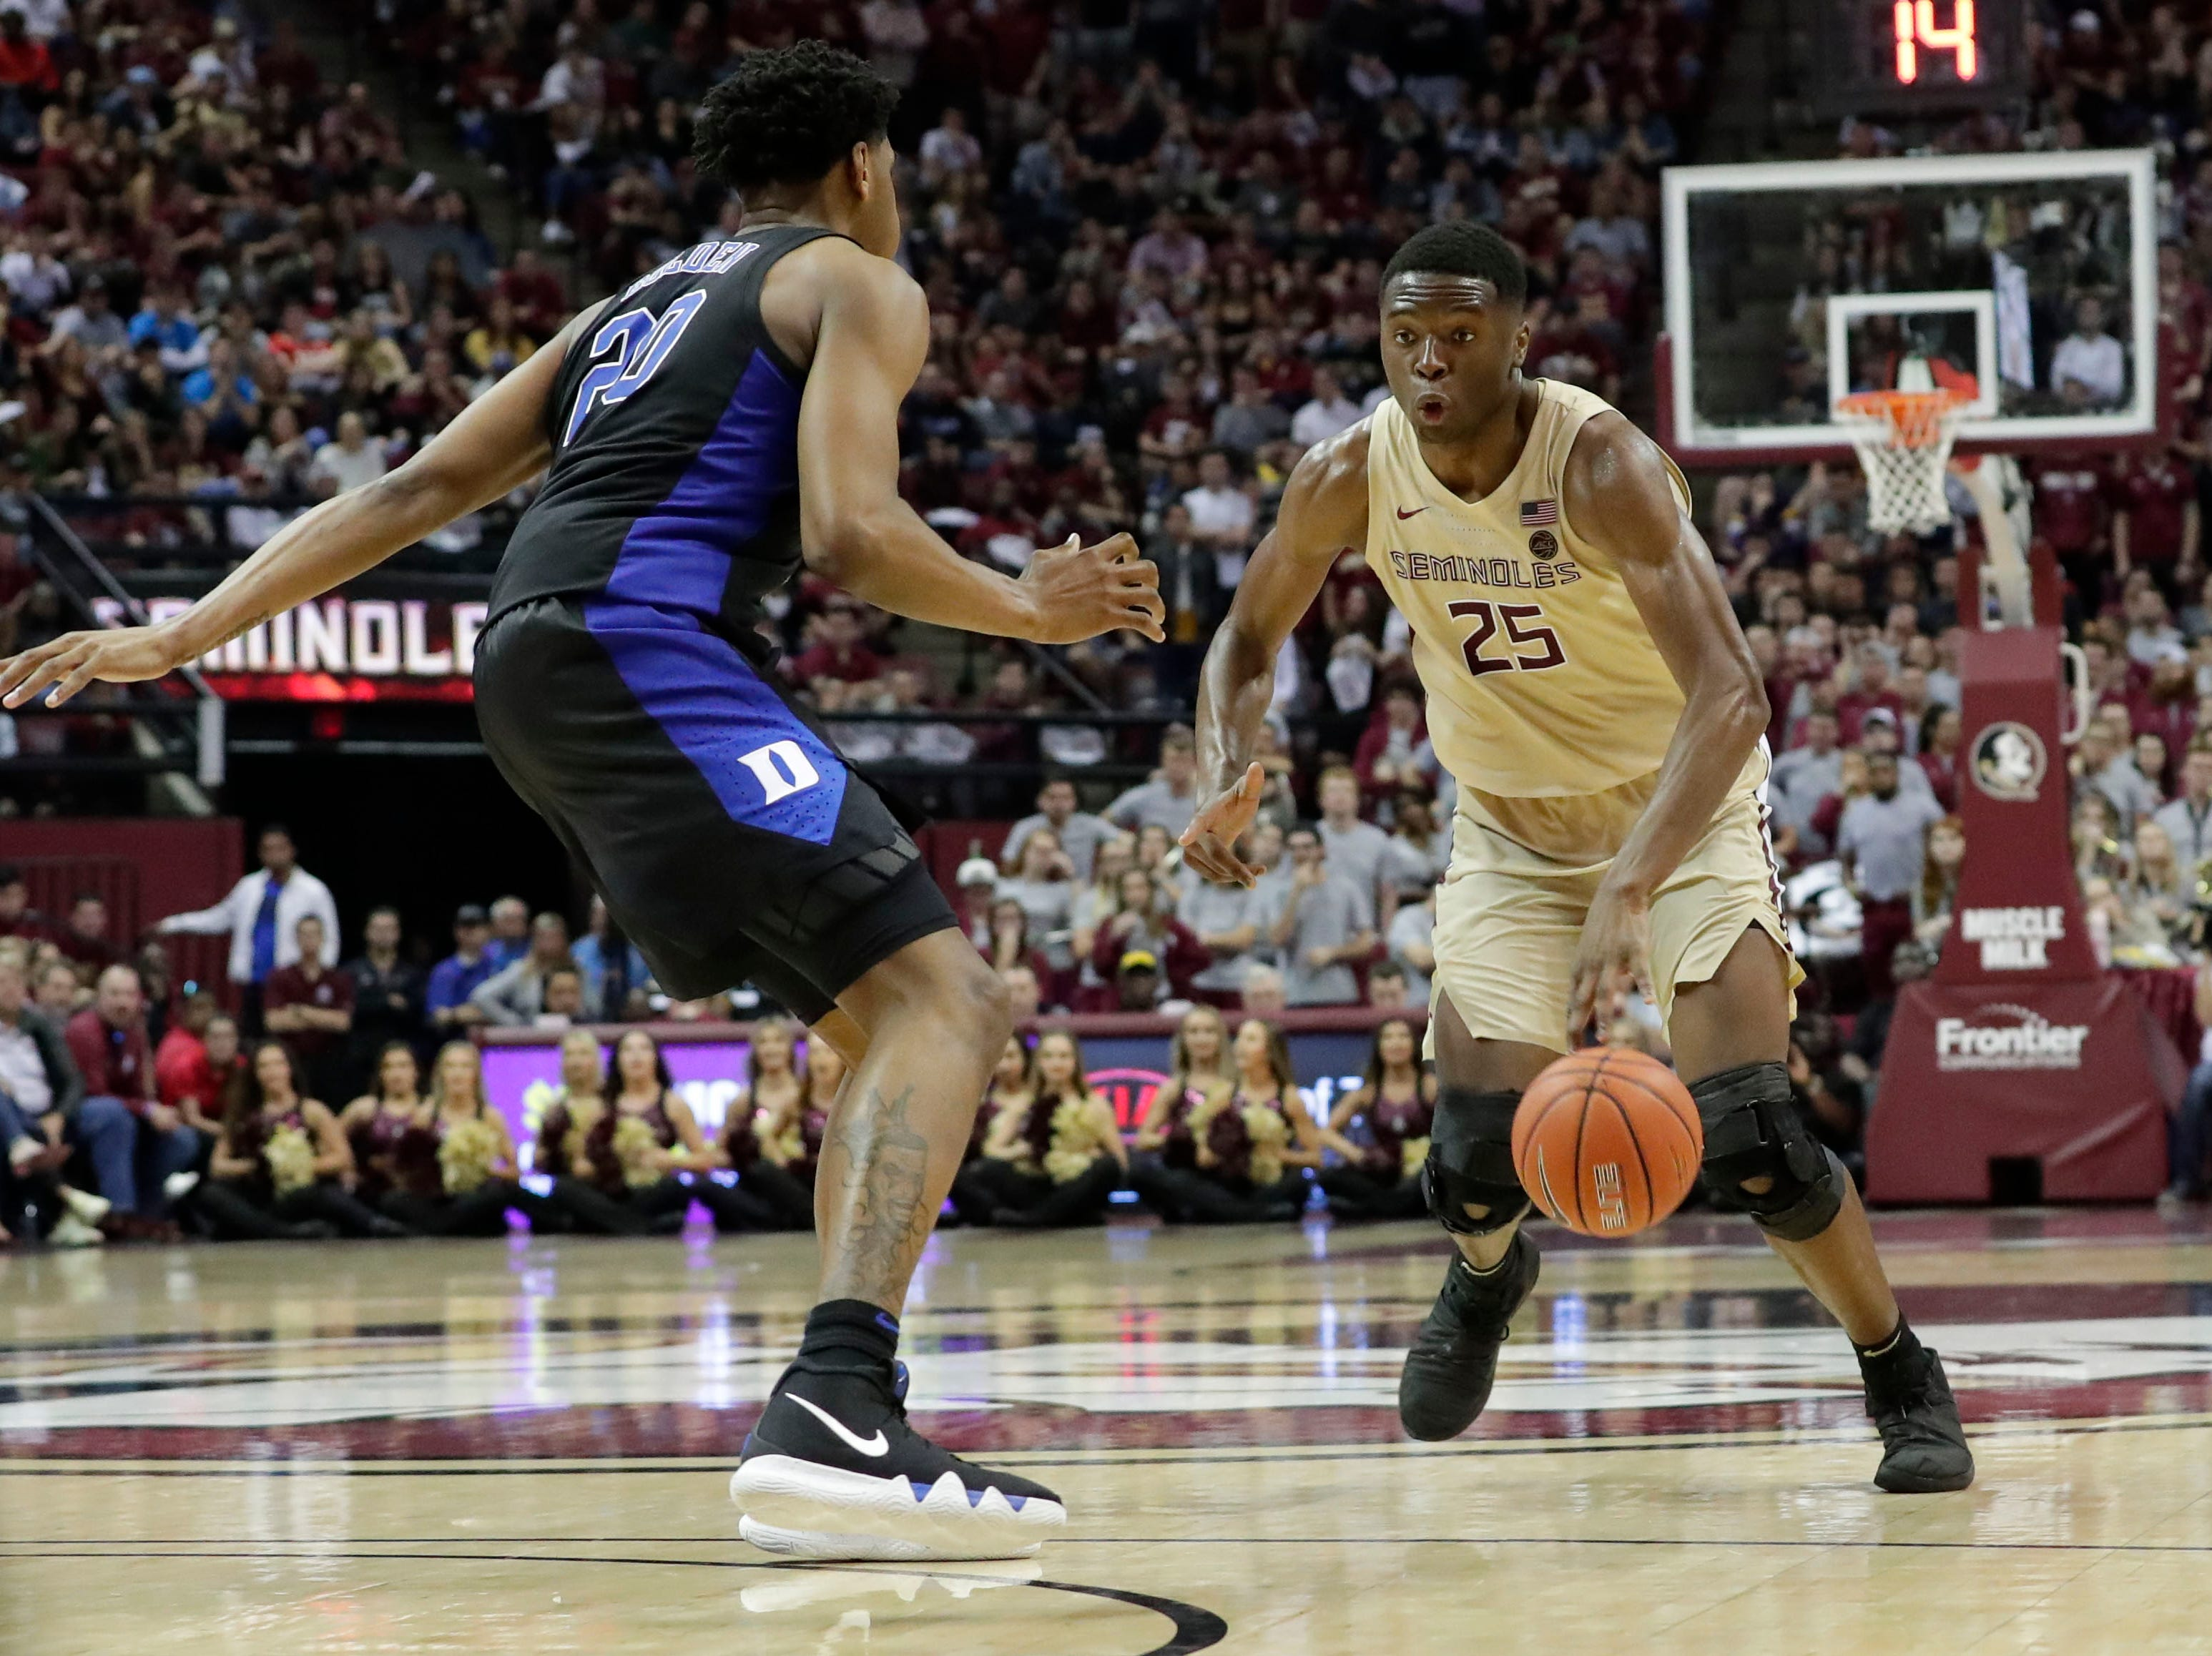 Florida State Seminoles forward Mfiondu Kabengele (25) drives the ball towards the hoop. Ranked 13 in the ACC, the Florida State Seminoles host the number 1 team, the Duke Blue Devils, at the Tucker Civic Center, Saturday, Jan. 12, 2019.